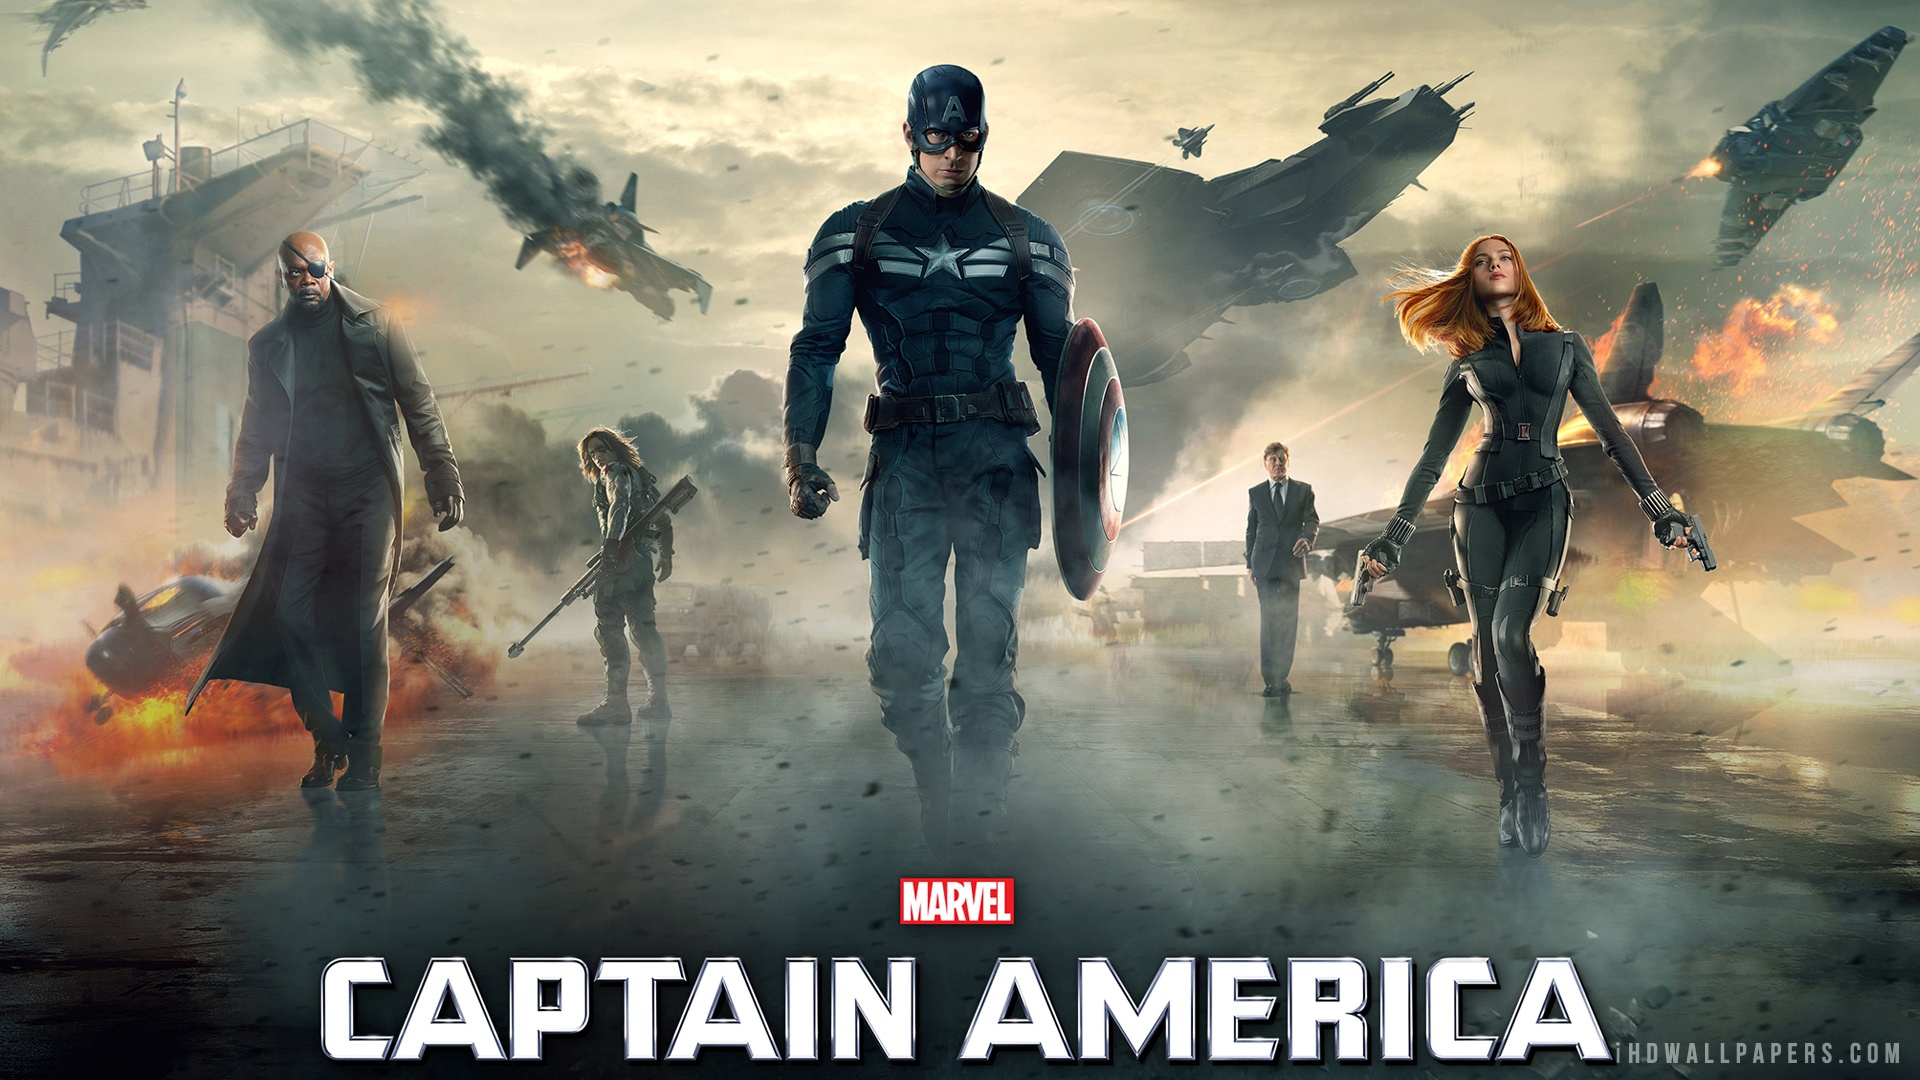 America The Winter Soldier Movie 2014 HD Wallpaper   iHD Wallpapers 1920x1080